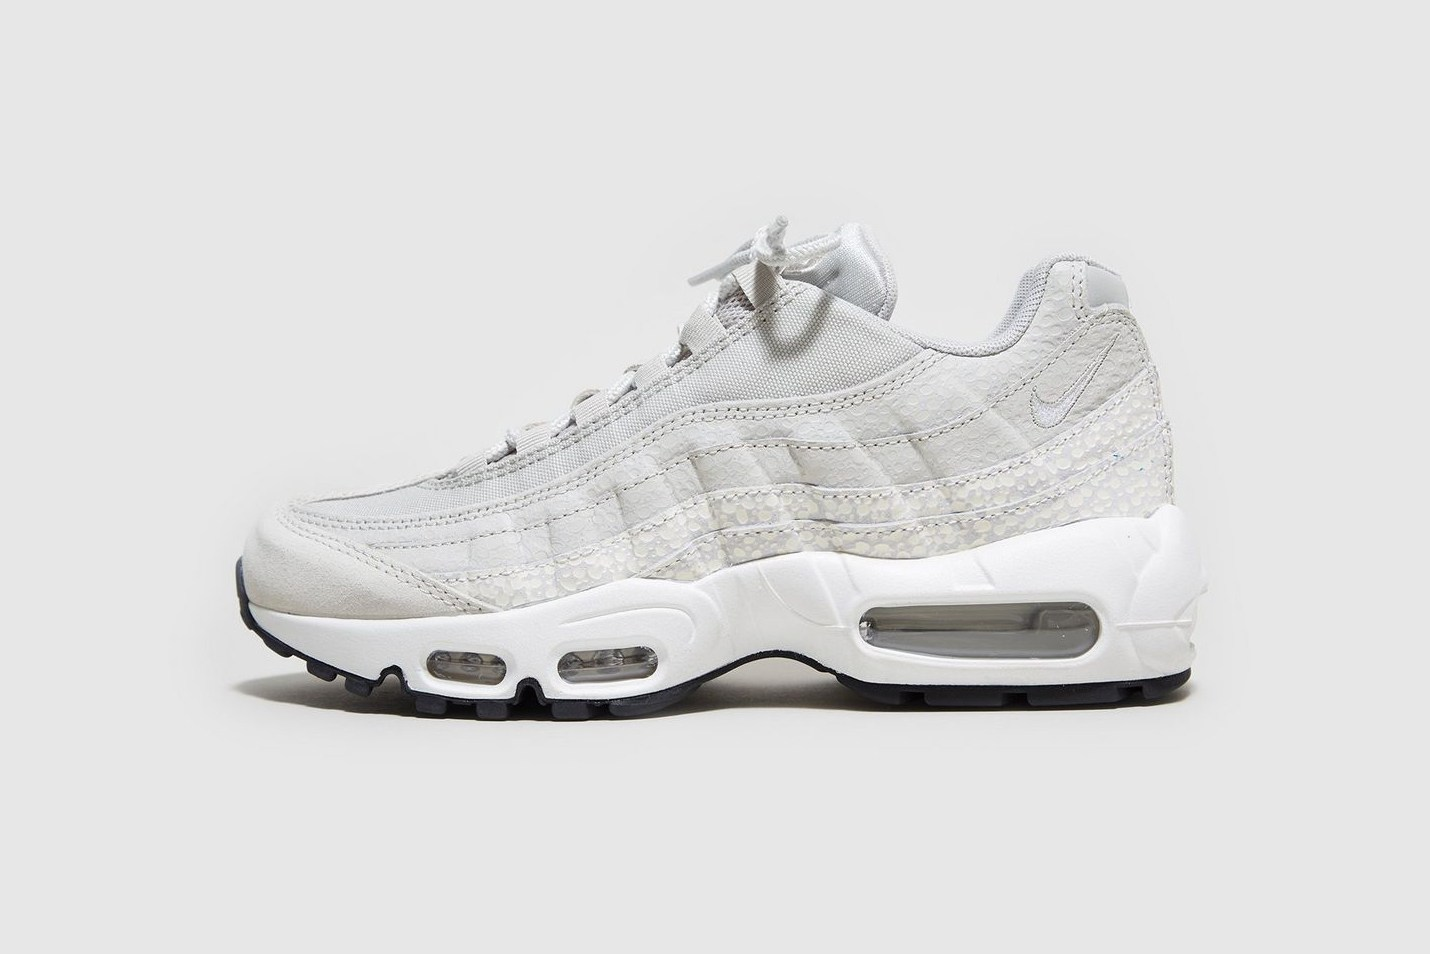 nike-air-max-95-off-white-safari-print-2